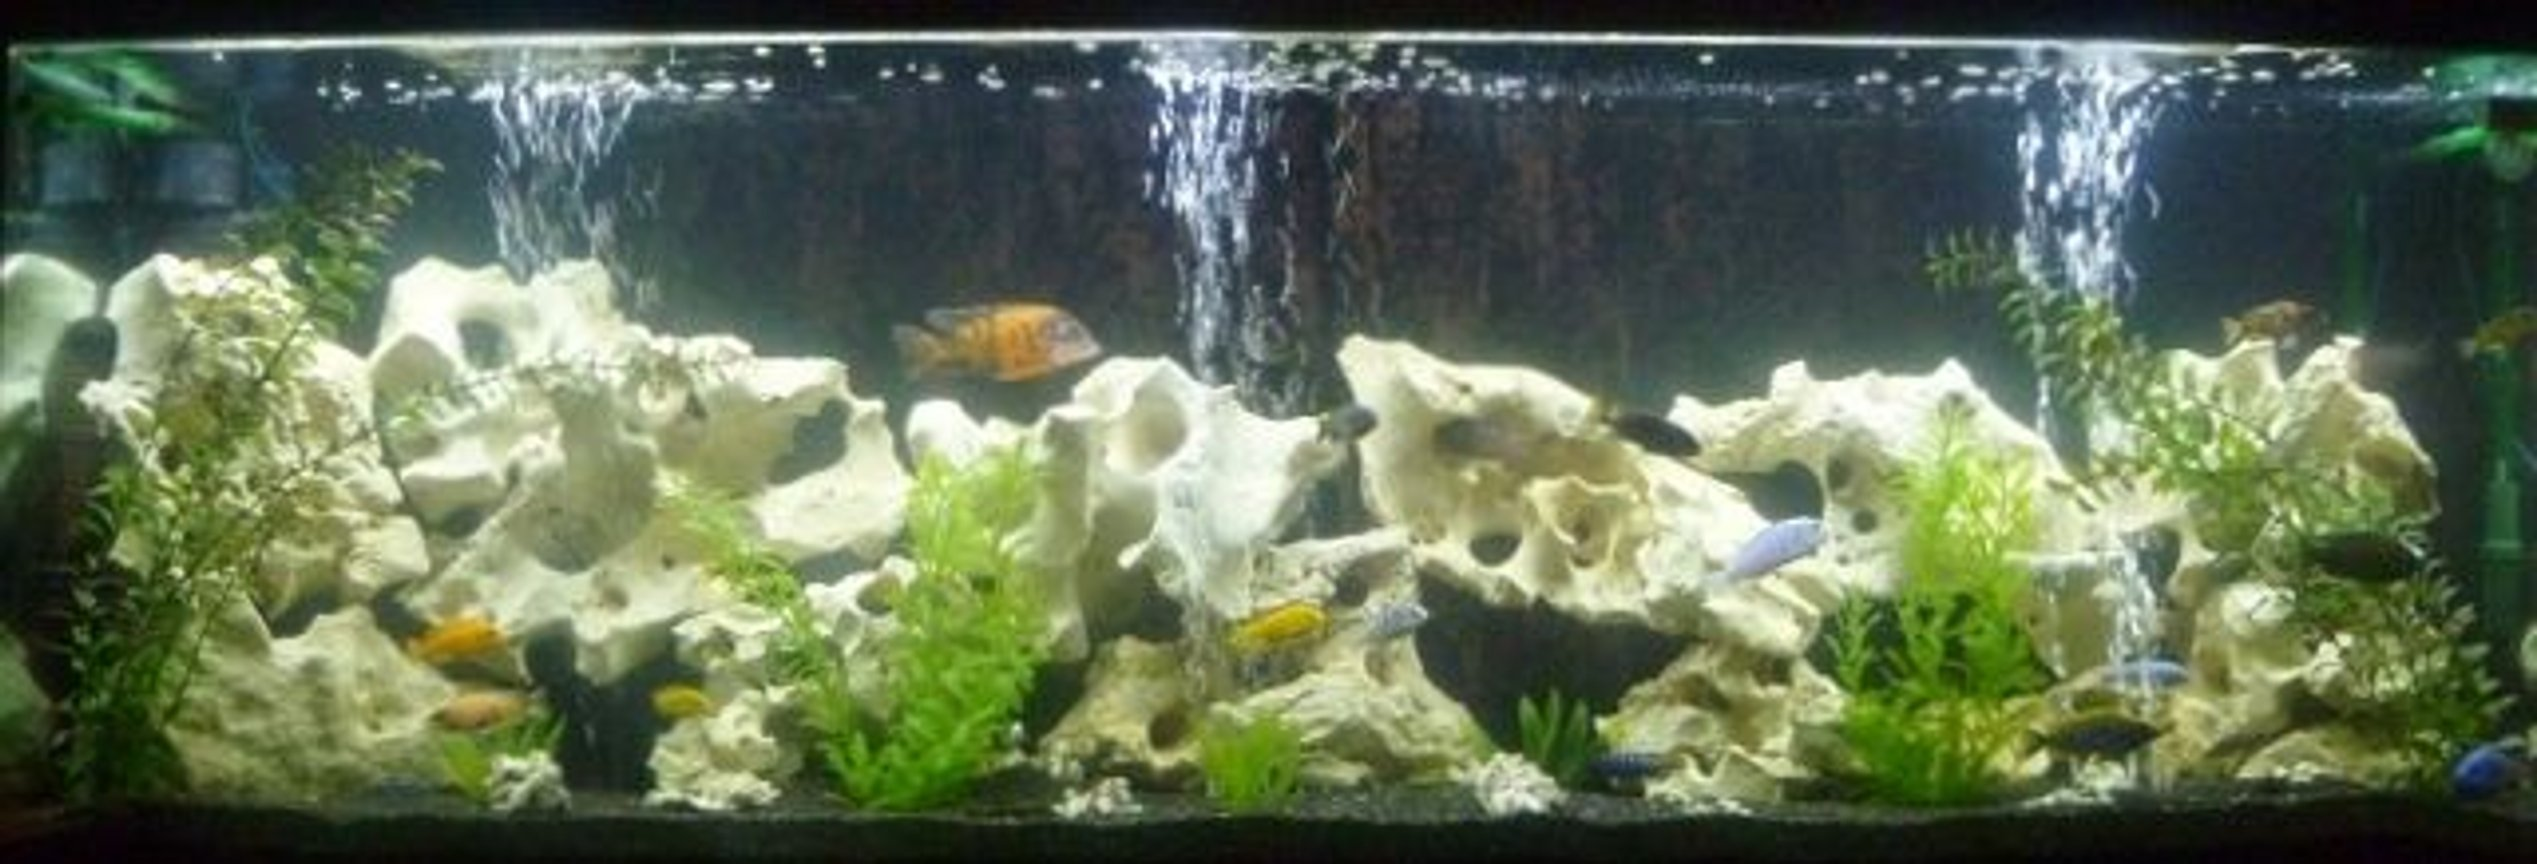 135 gallons freshwater fish tank (mostly fish and non-living decorations) - 135 gallon African Cichlid Tank